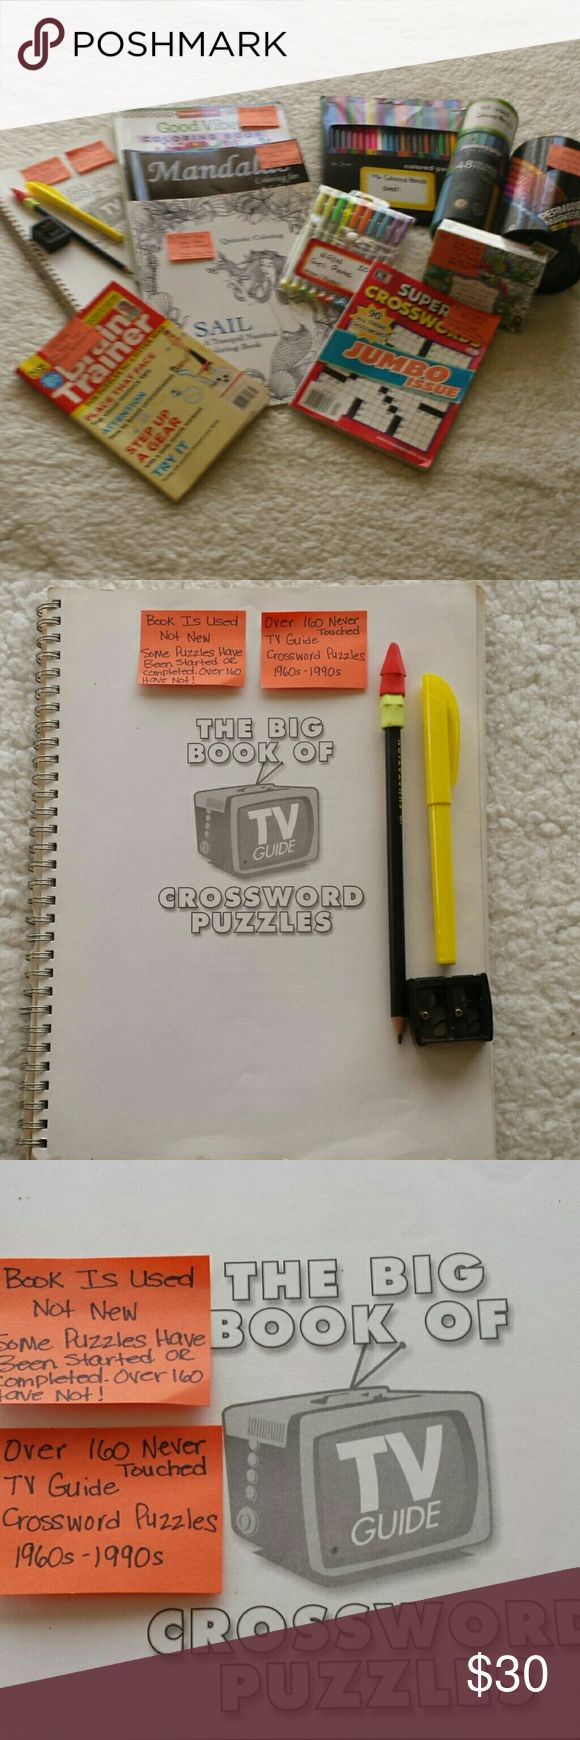 """Adult Coloring & Puzzle Books, Colored Pencils Etc Used TV Guide Crossword Puzzles from 1960s-1990s. Some completed. Over 160 haven't been touched. 3 Adult Coloring Books: Sail Tranquil Nautical w/27 uncolored pages, Mandalas w/37 uncolored pages, Good Vibes w/22 uncolored pages. Box 48 Used Colored Pencils, 17 New Permanent Markers, Set 46 Used Colored Pencils, 10 used working Gel Pens, 44 New In Box """"God's Love"""" Coloring Cards. Brain Trainer Puzzles Book, & 89 Crossword Puzzles Book…"""